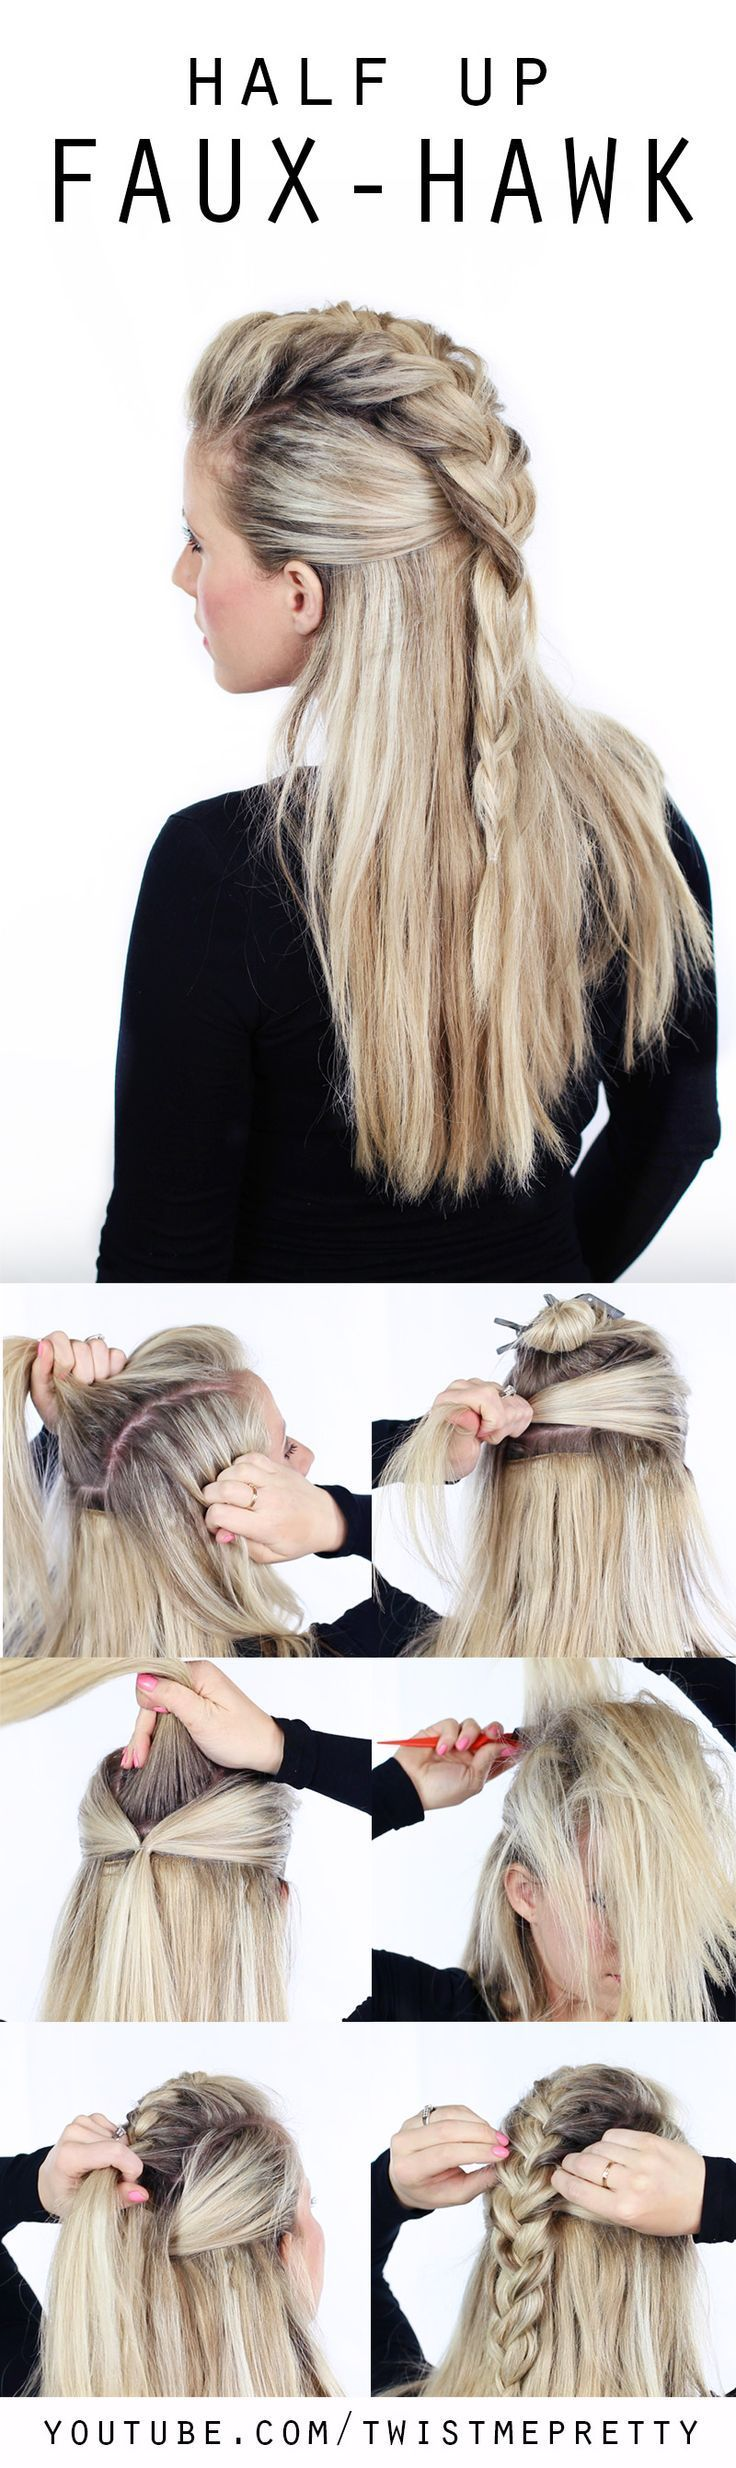 nice How to Tame Your Hair: Summer Hair Tutorials - Pretty Designs by http://www.dana-hairstyles.xyz/hair-tutorials/how-to-tame-your-hair-summer-hair-tutorials-pretty-designs-3/